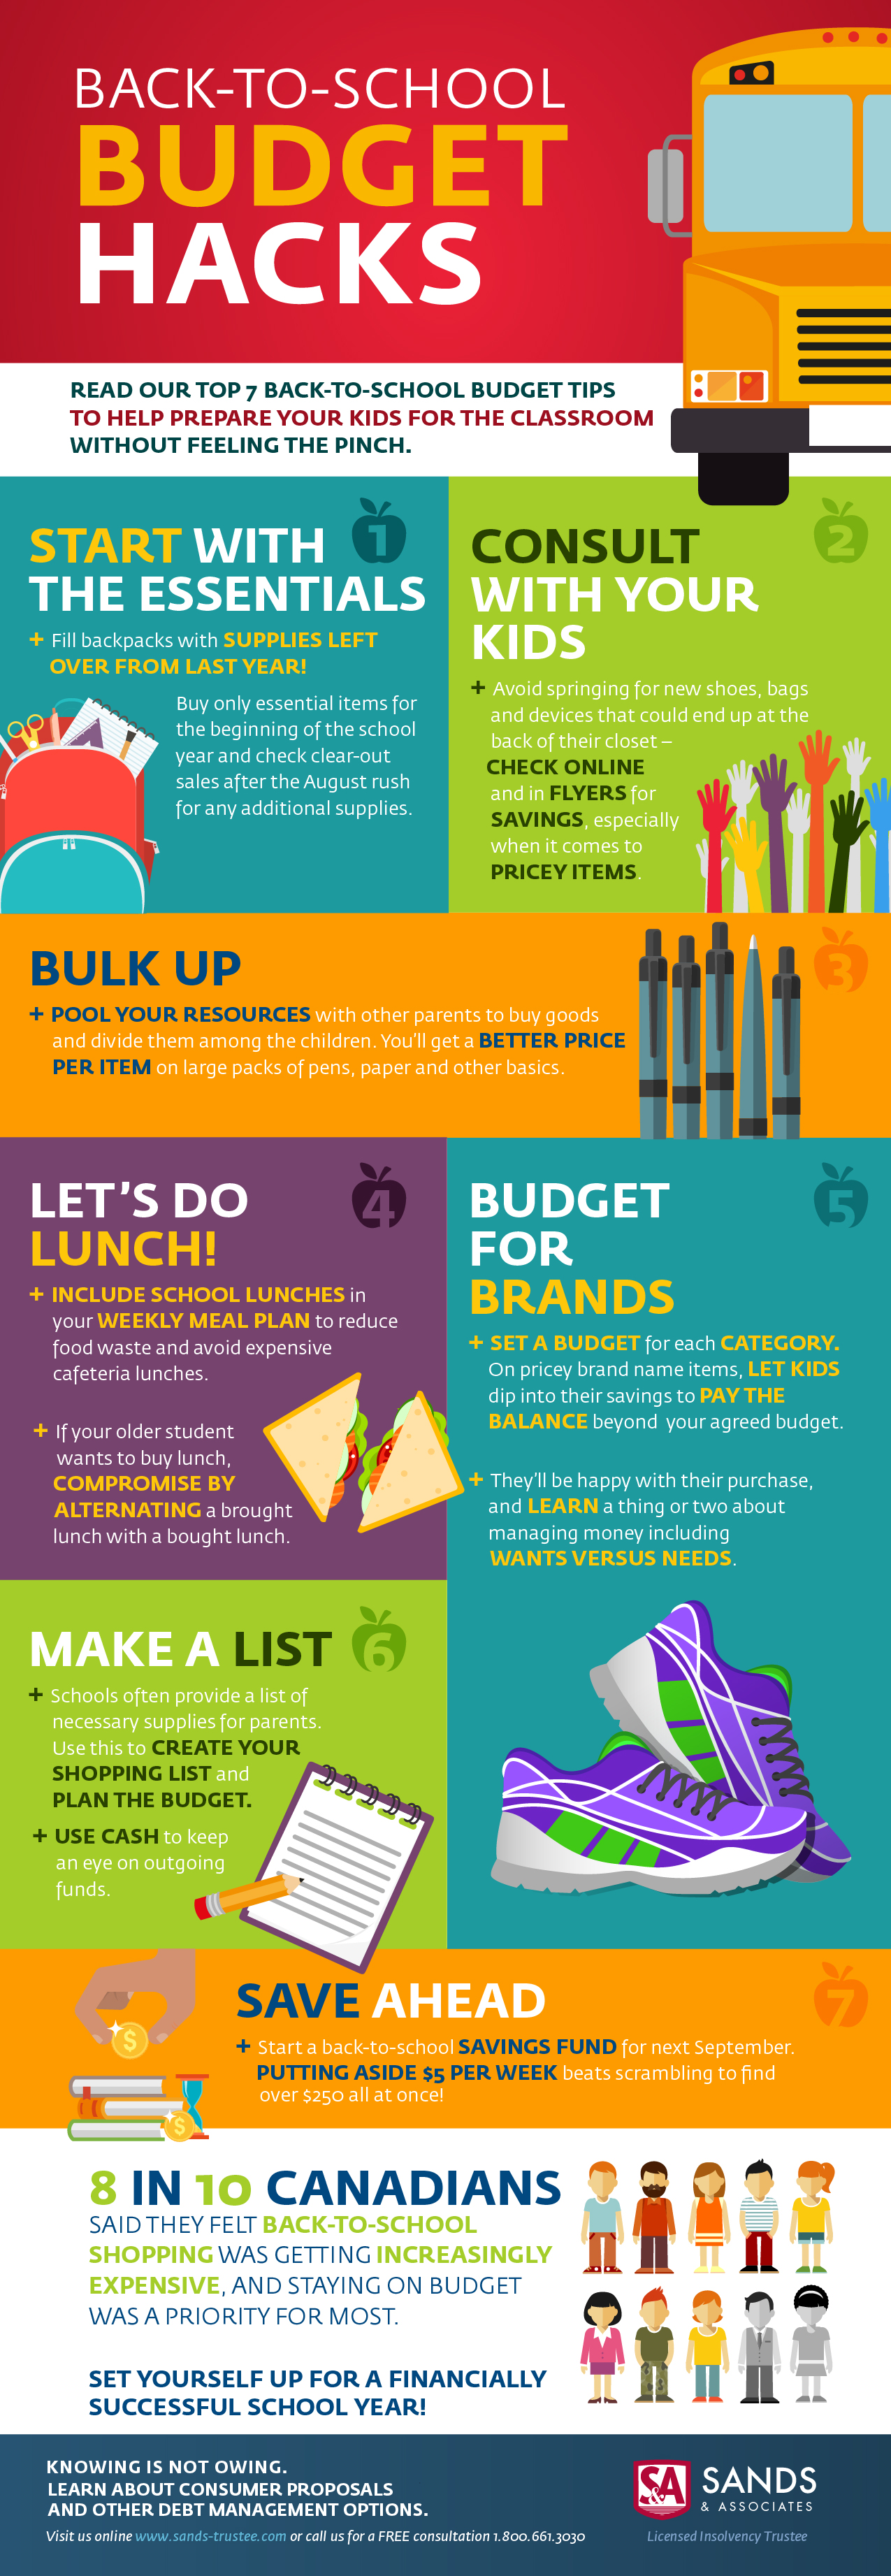 Sands & Associates back-to-school budgeting tips infographic